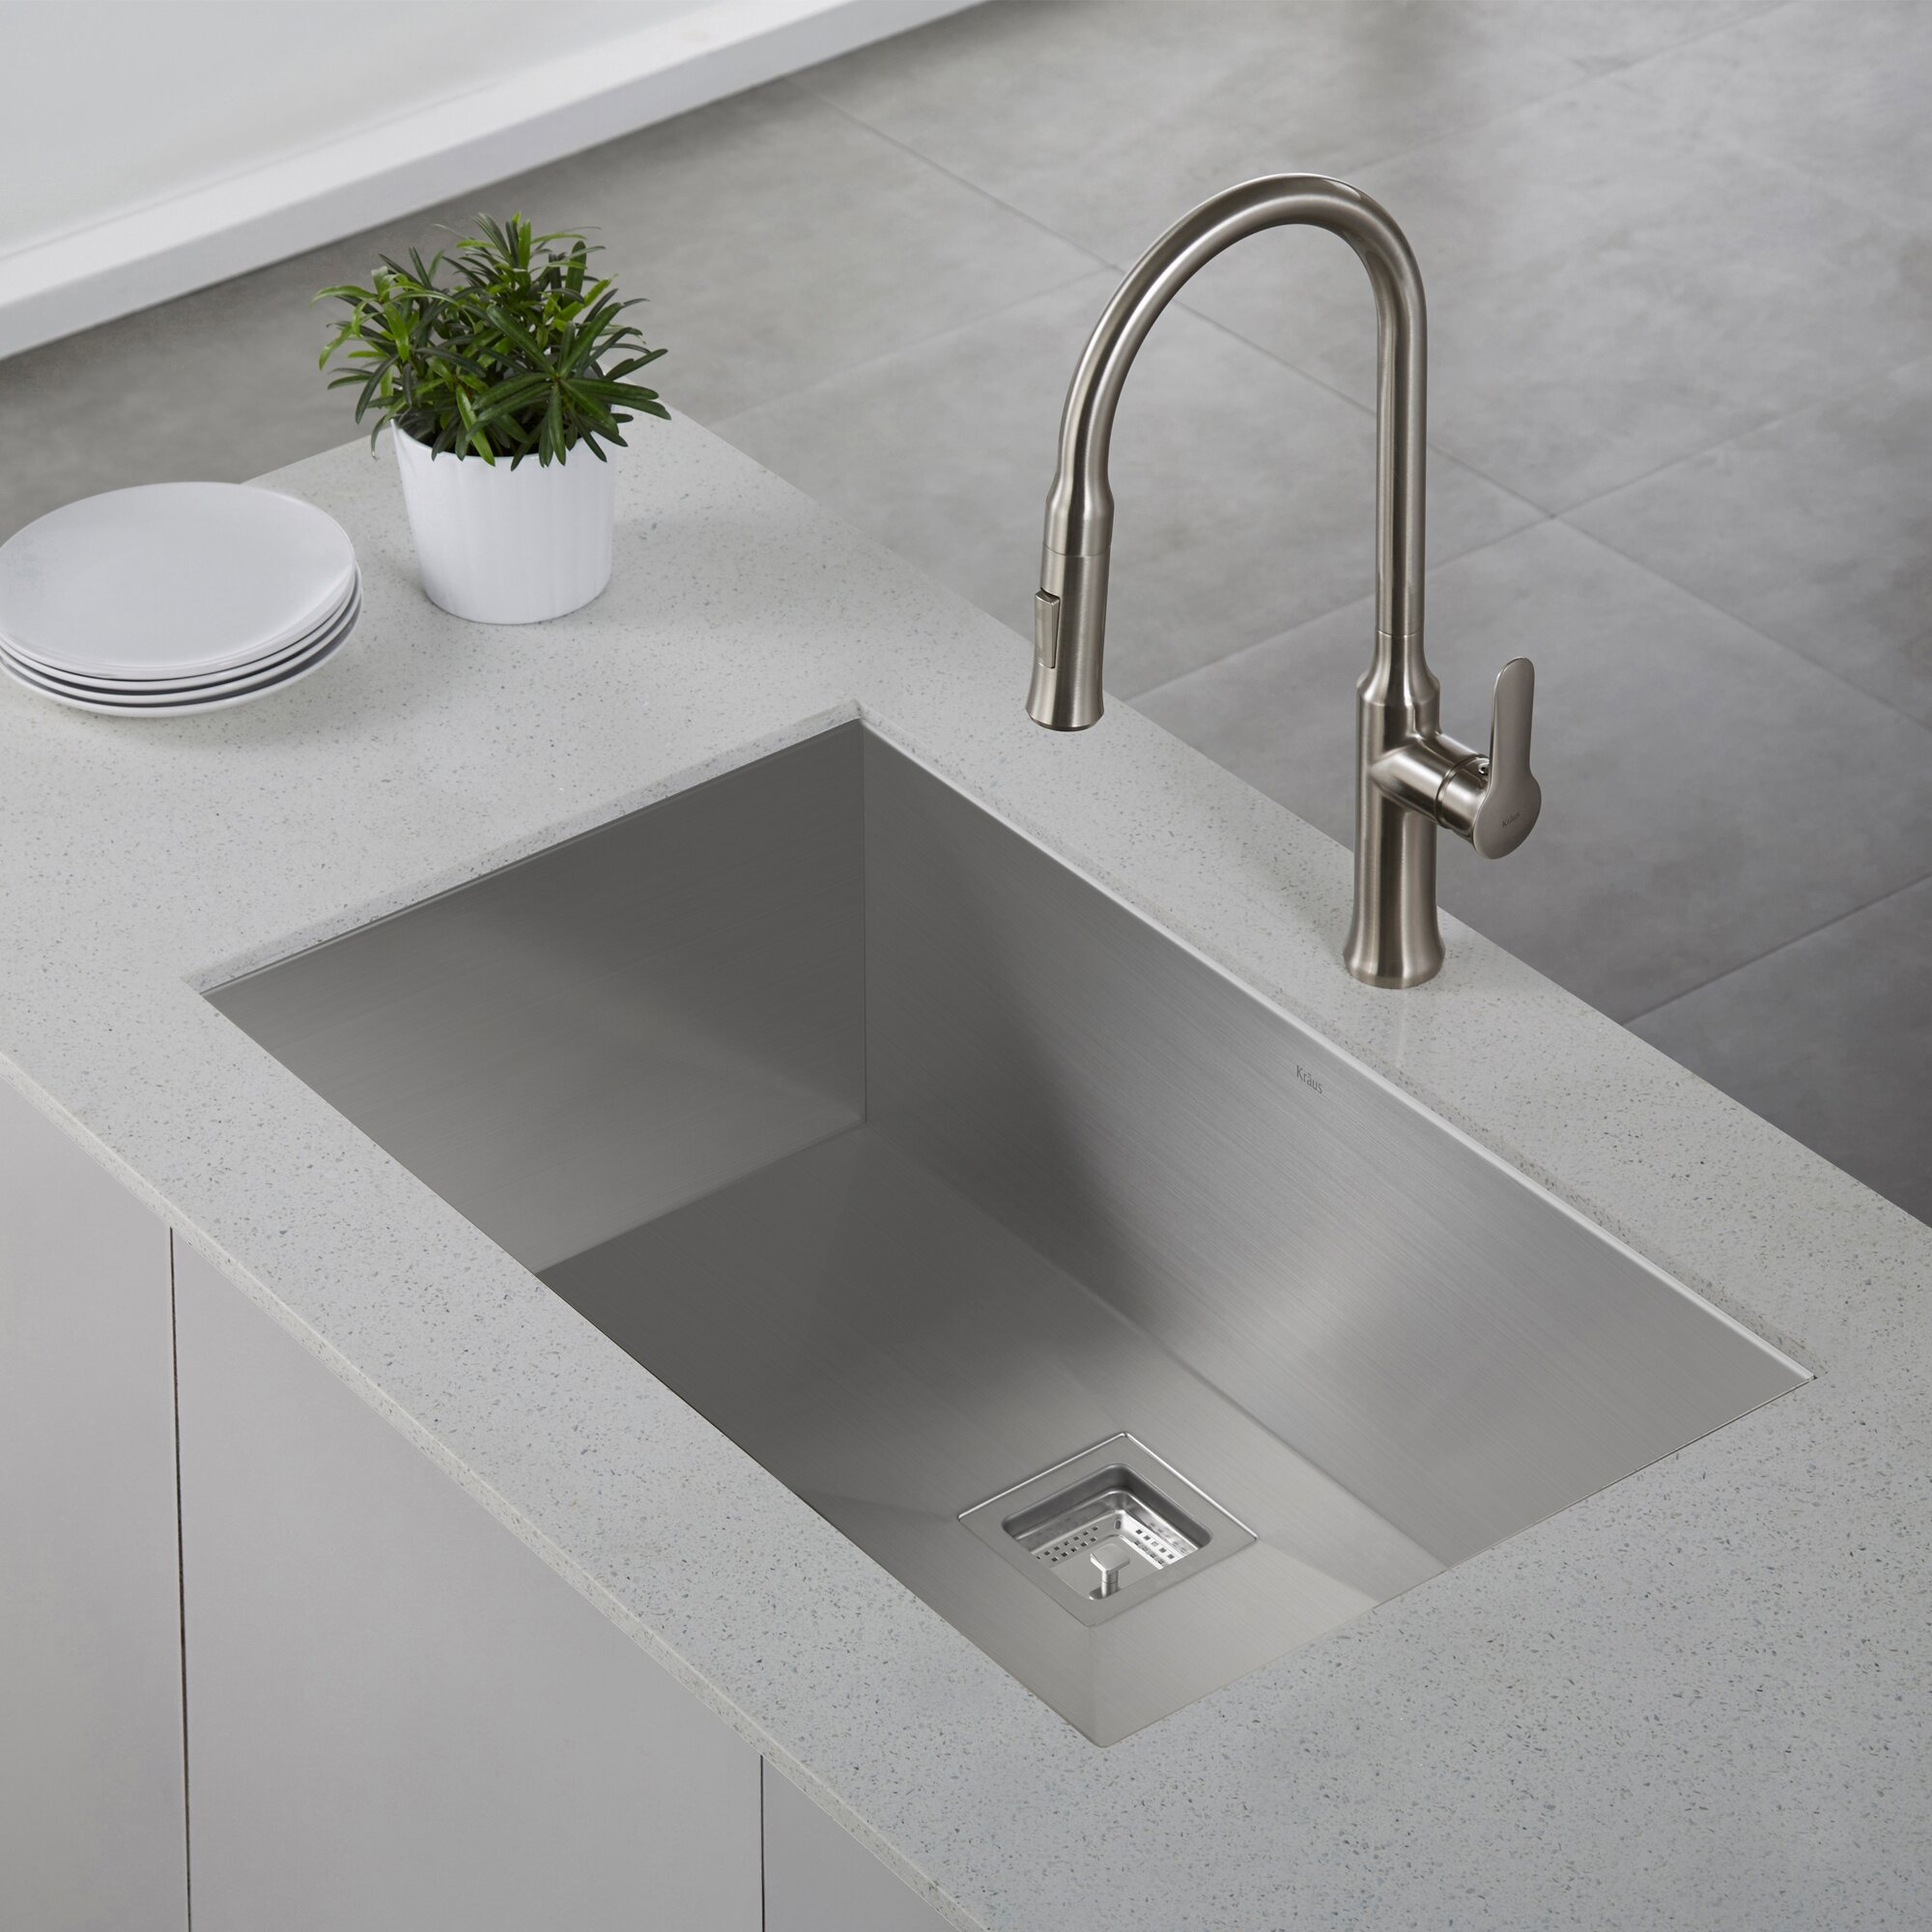 Sink Undermount : ... Handmade Undermount Single Bowl Stainless Steel Kitchen Sink Wayfair